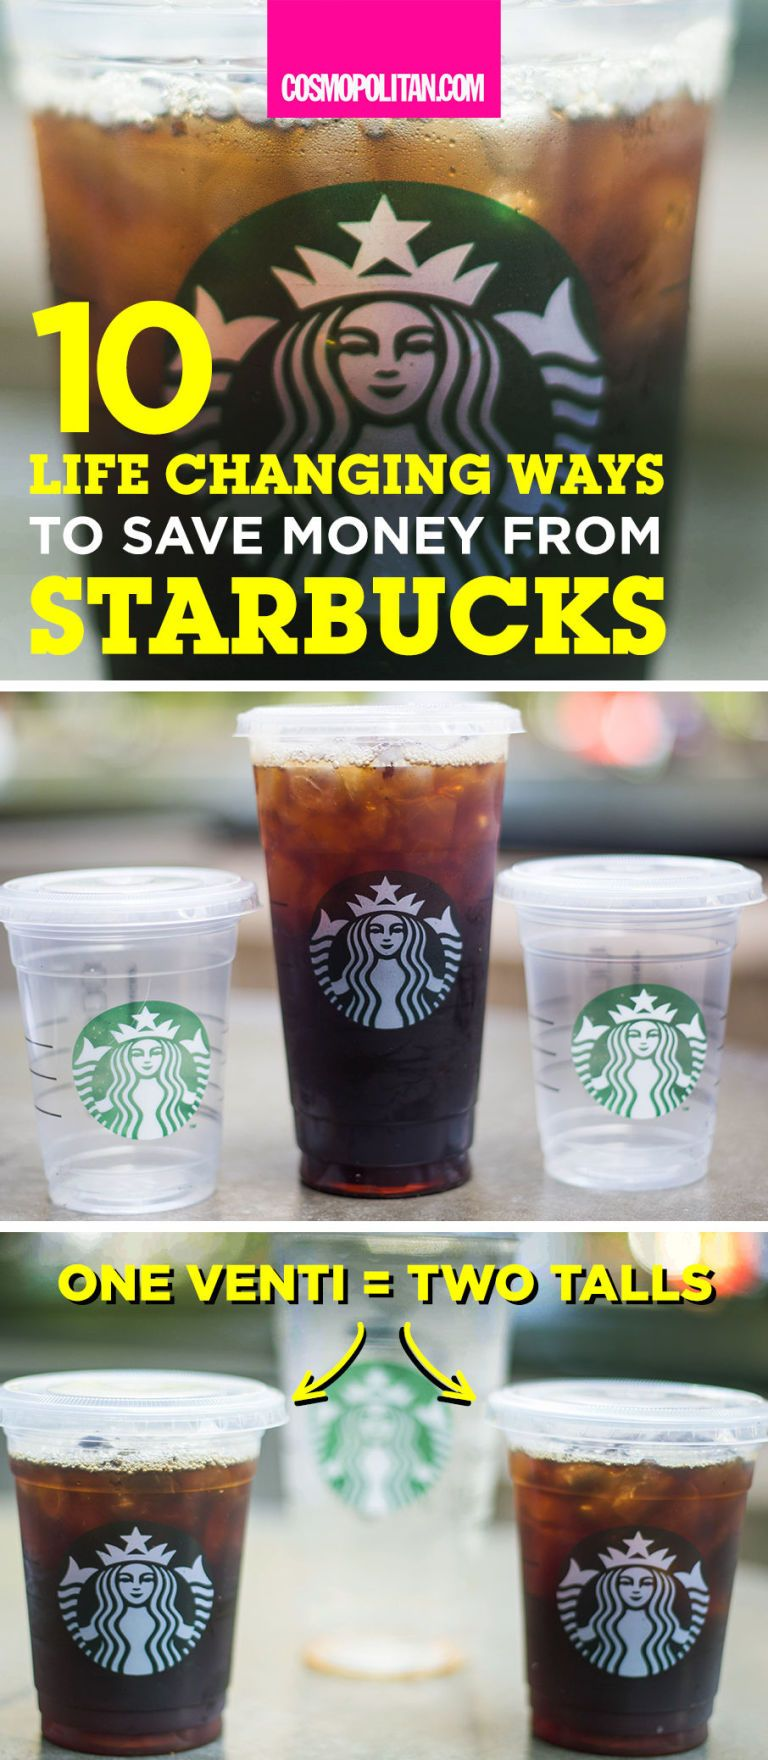 10 Life Changing Ways To Save Money At Starbucks Starbucks Hacks Saving Money Ways To Save Money